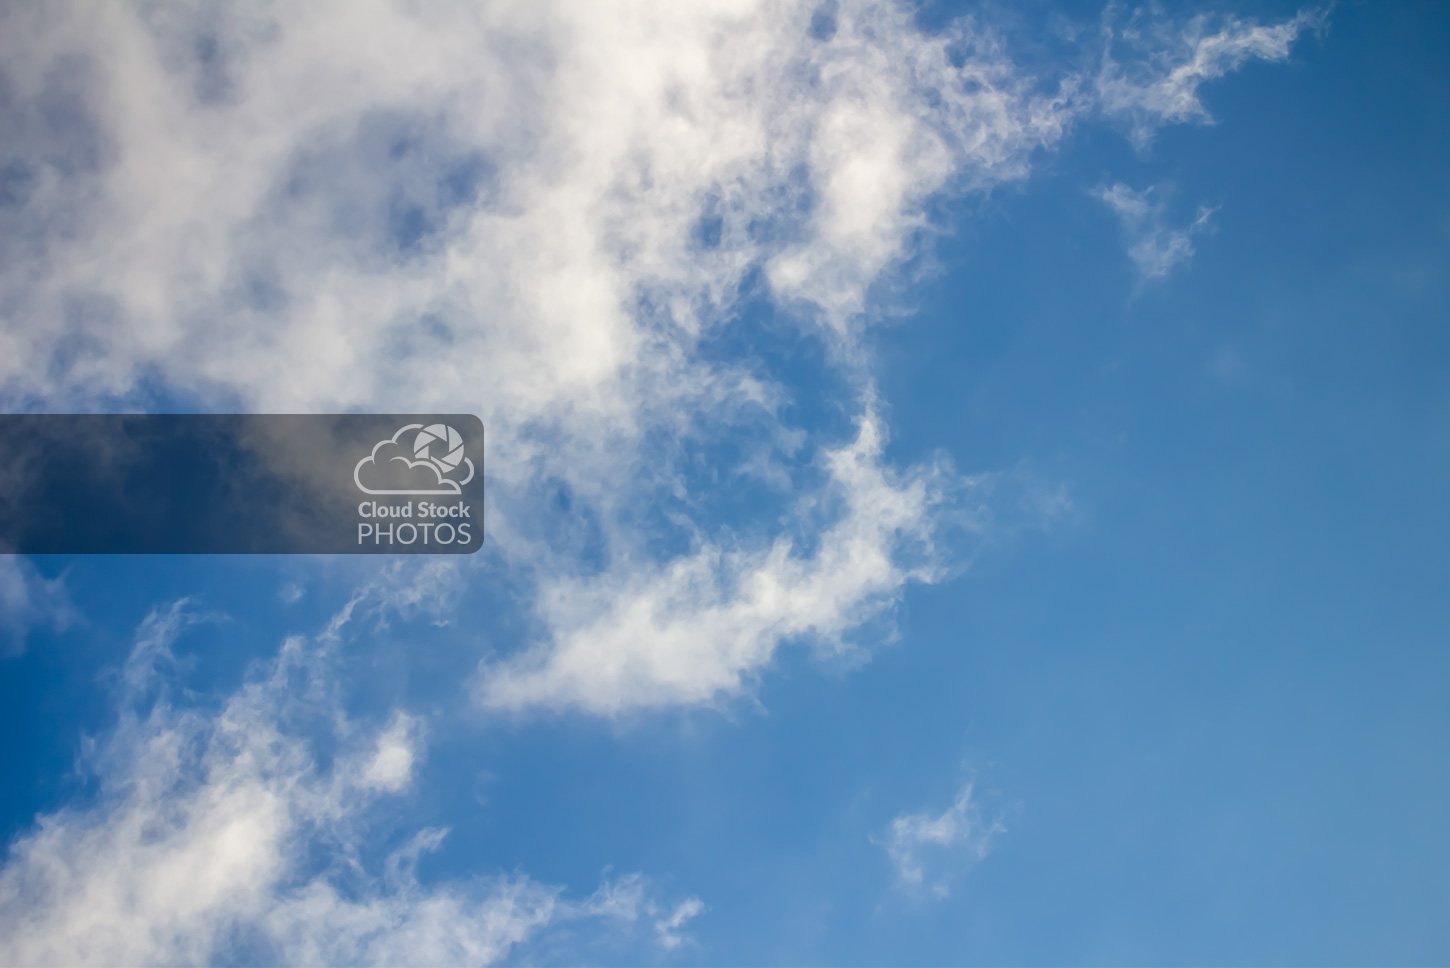 A stock photo of large thin clouds in white and gray along the top and left sides, with a big area of blue sky on the right.